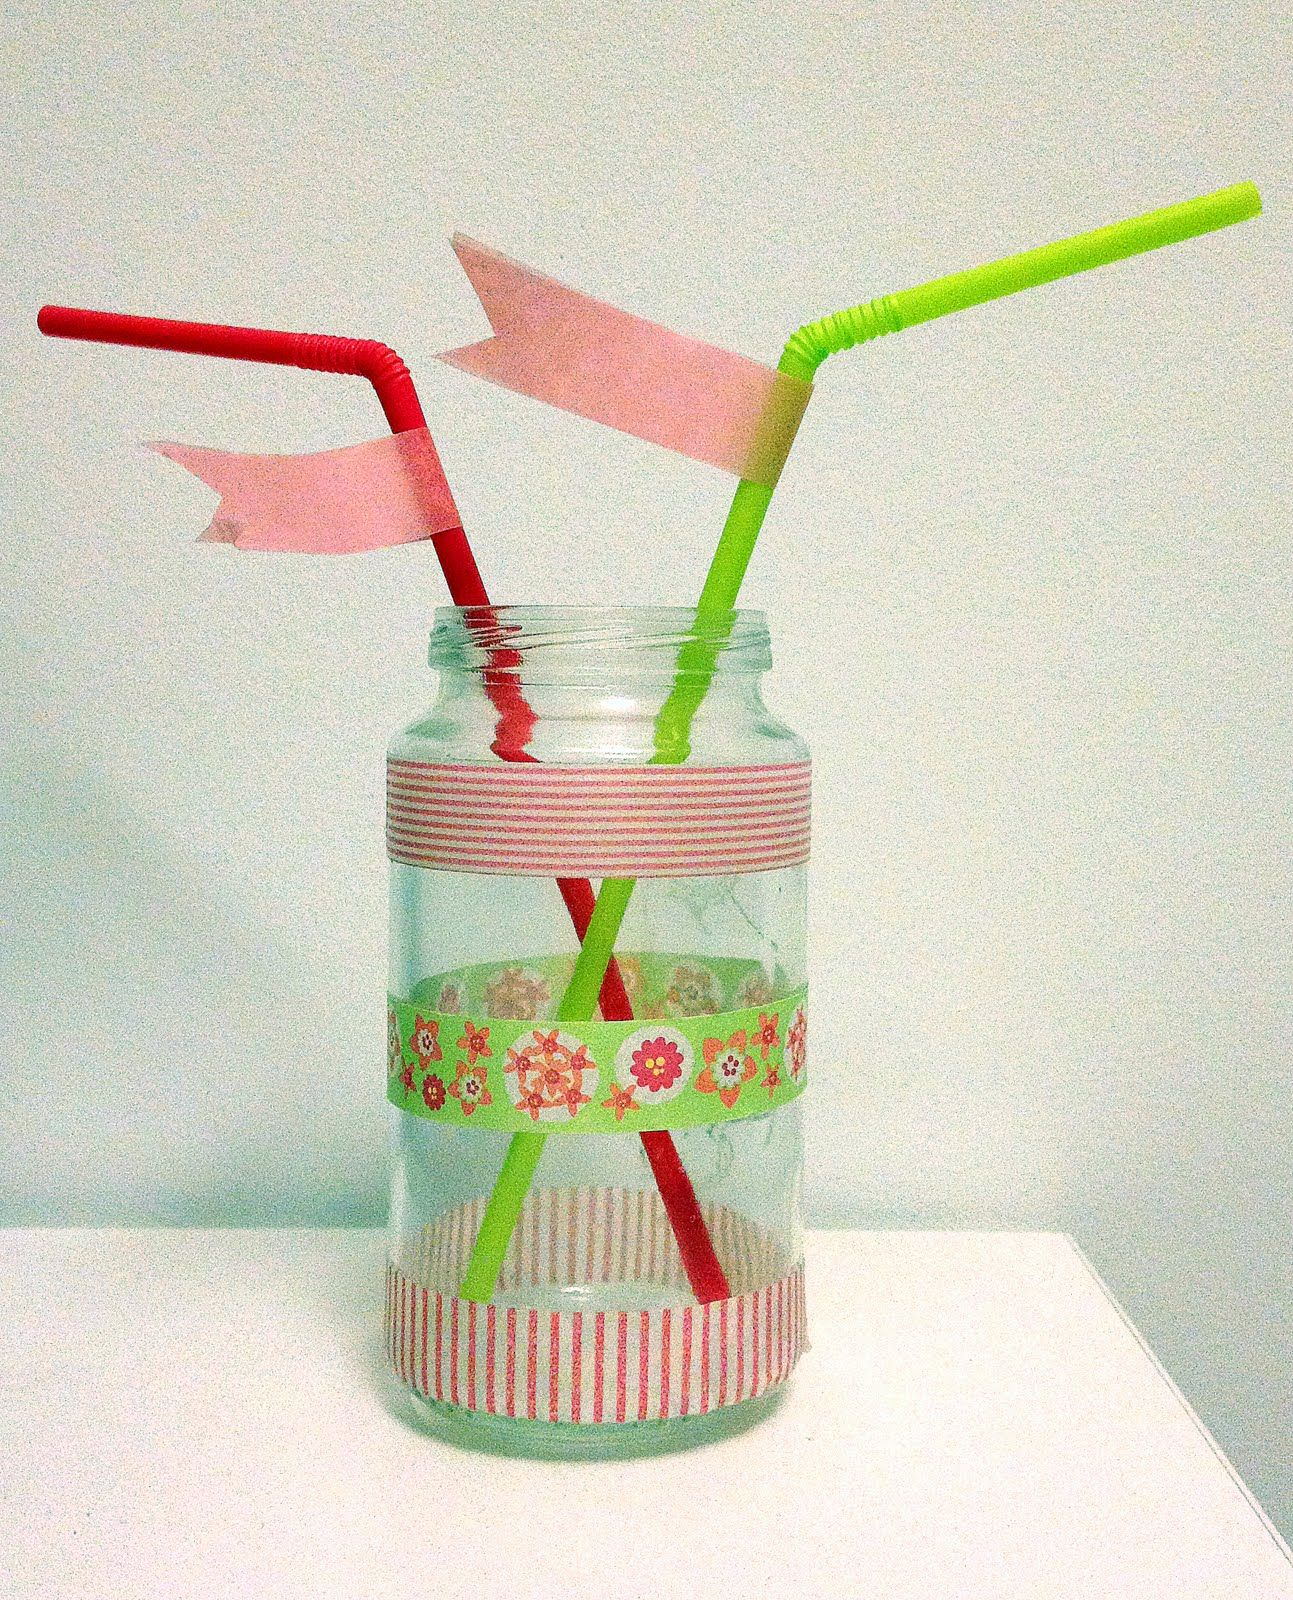 Ideas Para Decorar Con Washi Tape Bote De Potito Decorado Con Washi Tape Party Ideas